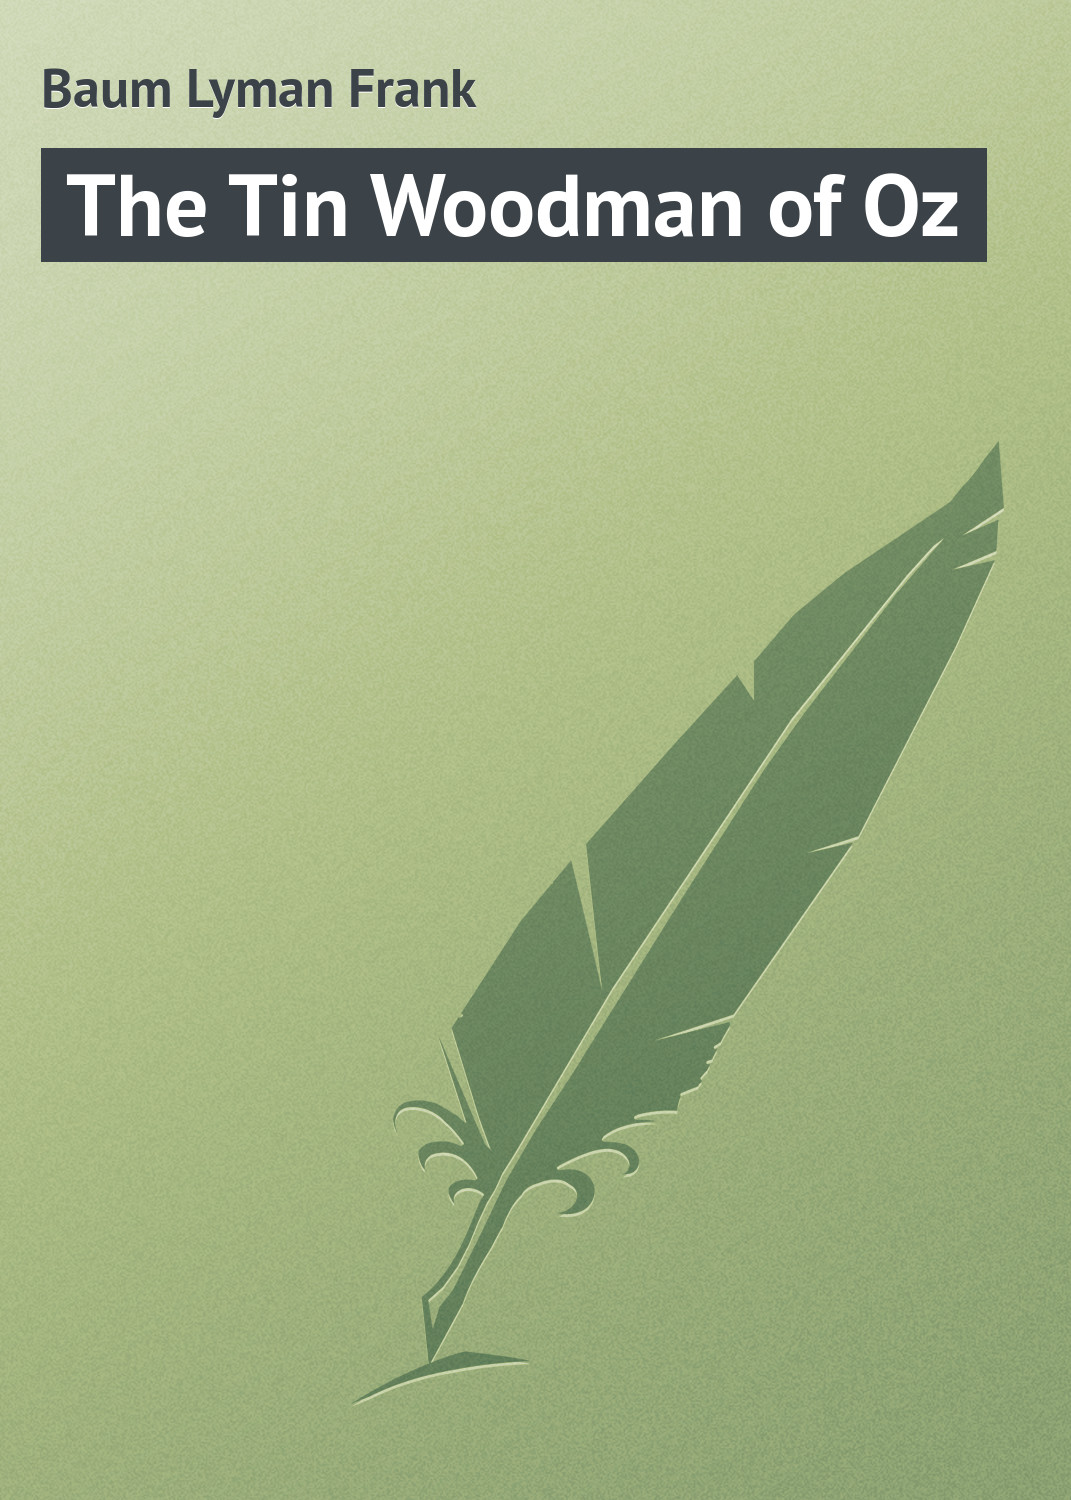 Лаймен Фрэнк Баум The Tin Woodman of Oz лаймен фрэнк баум the tin woodman of oz